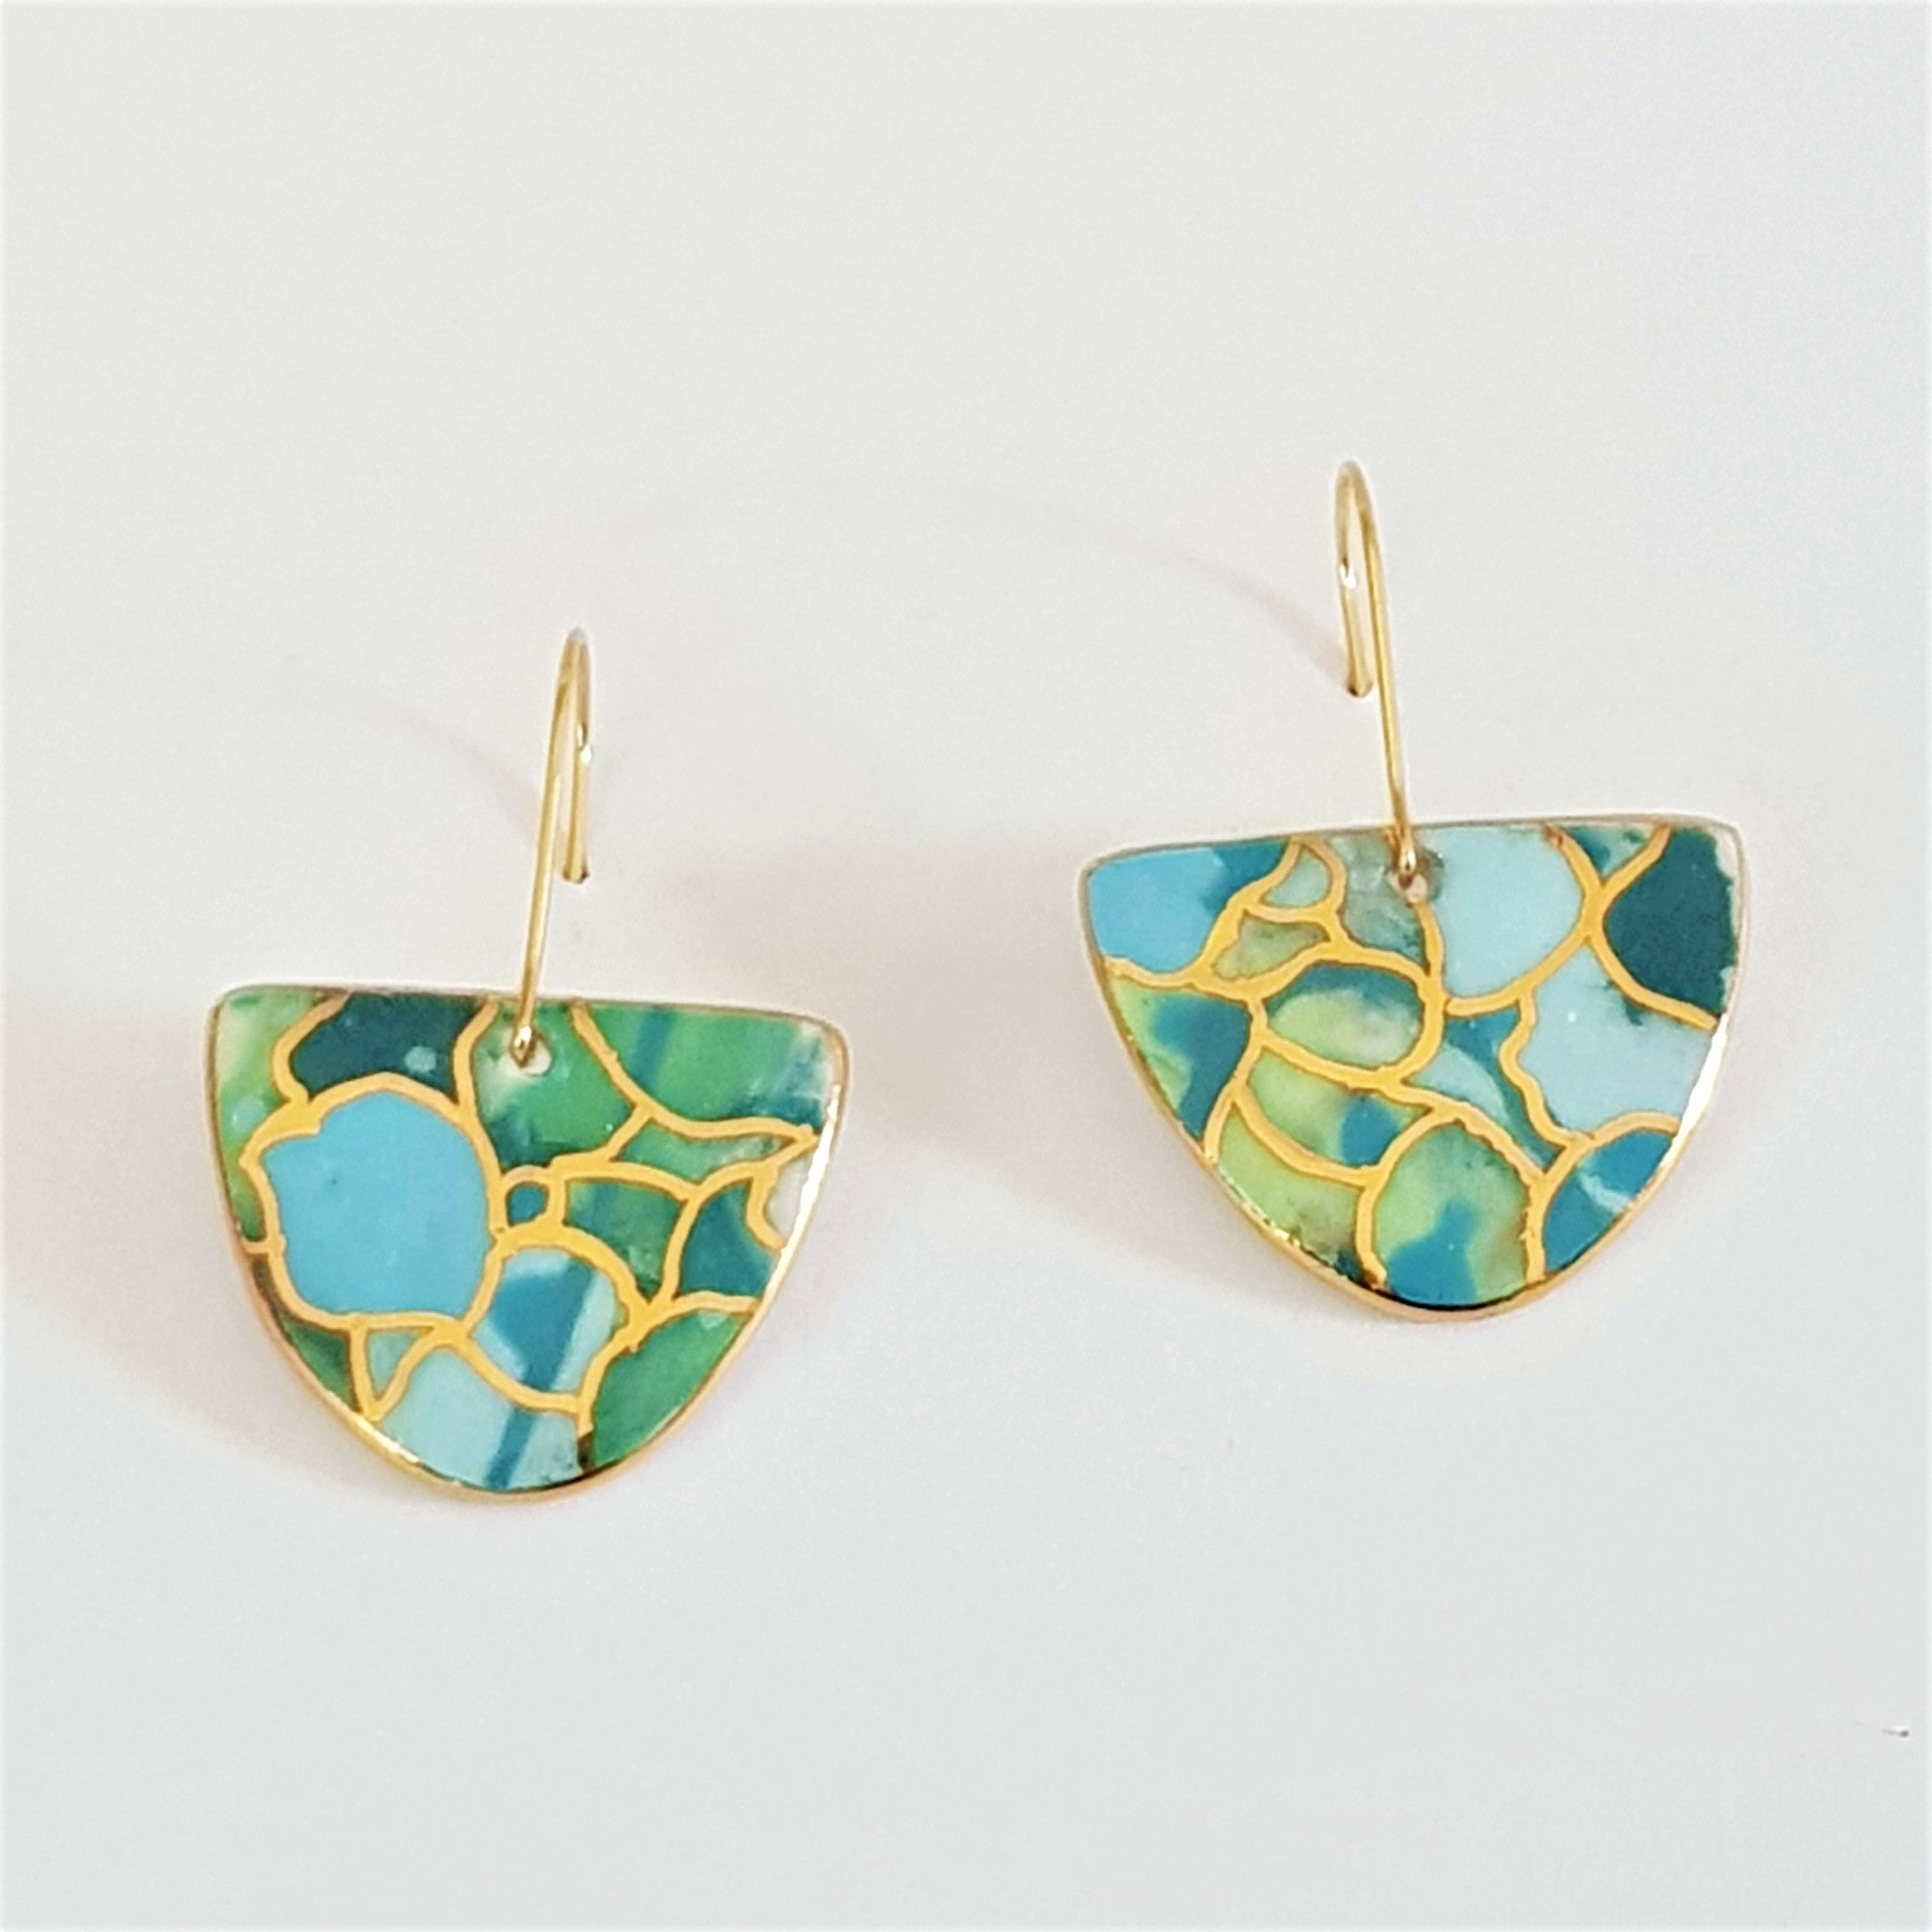 D dangle earrings in teals and blues with gold